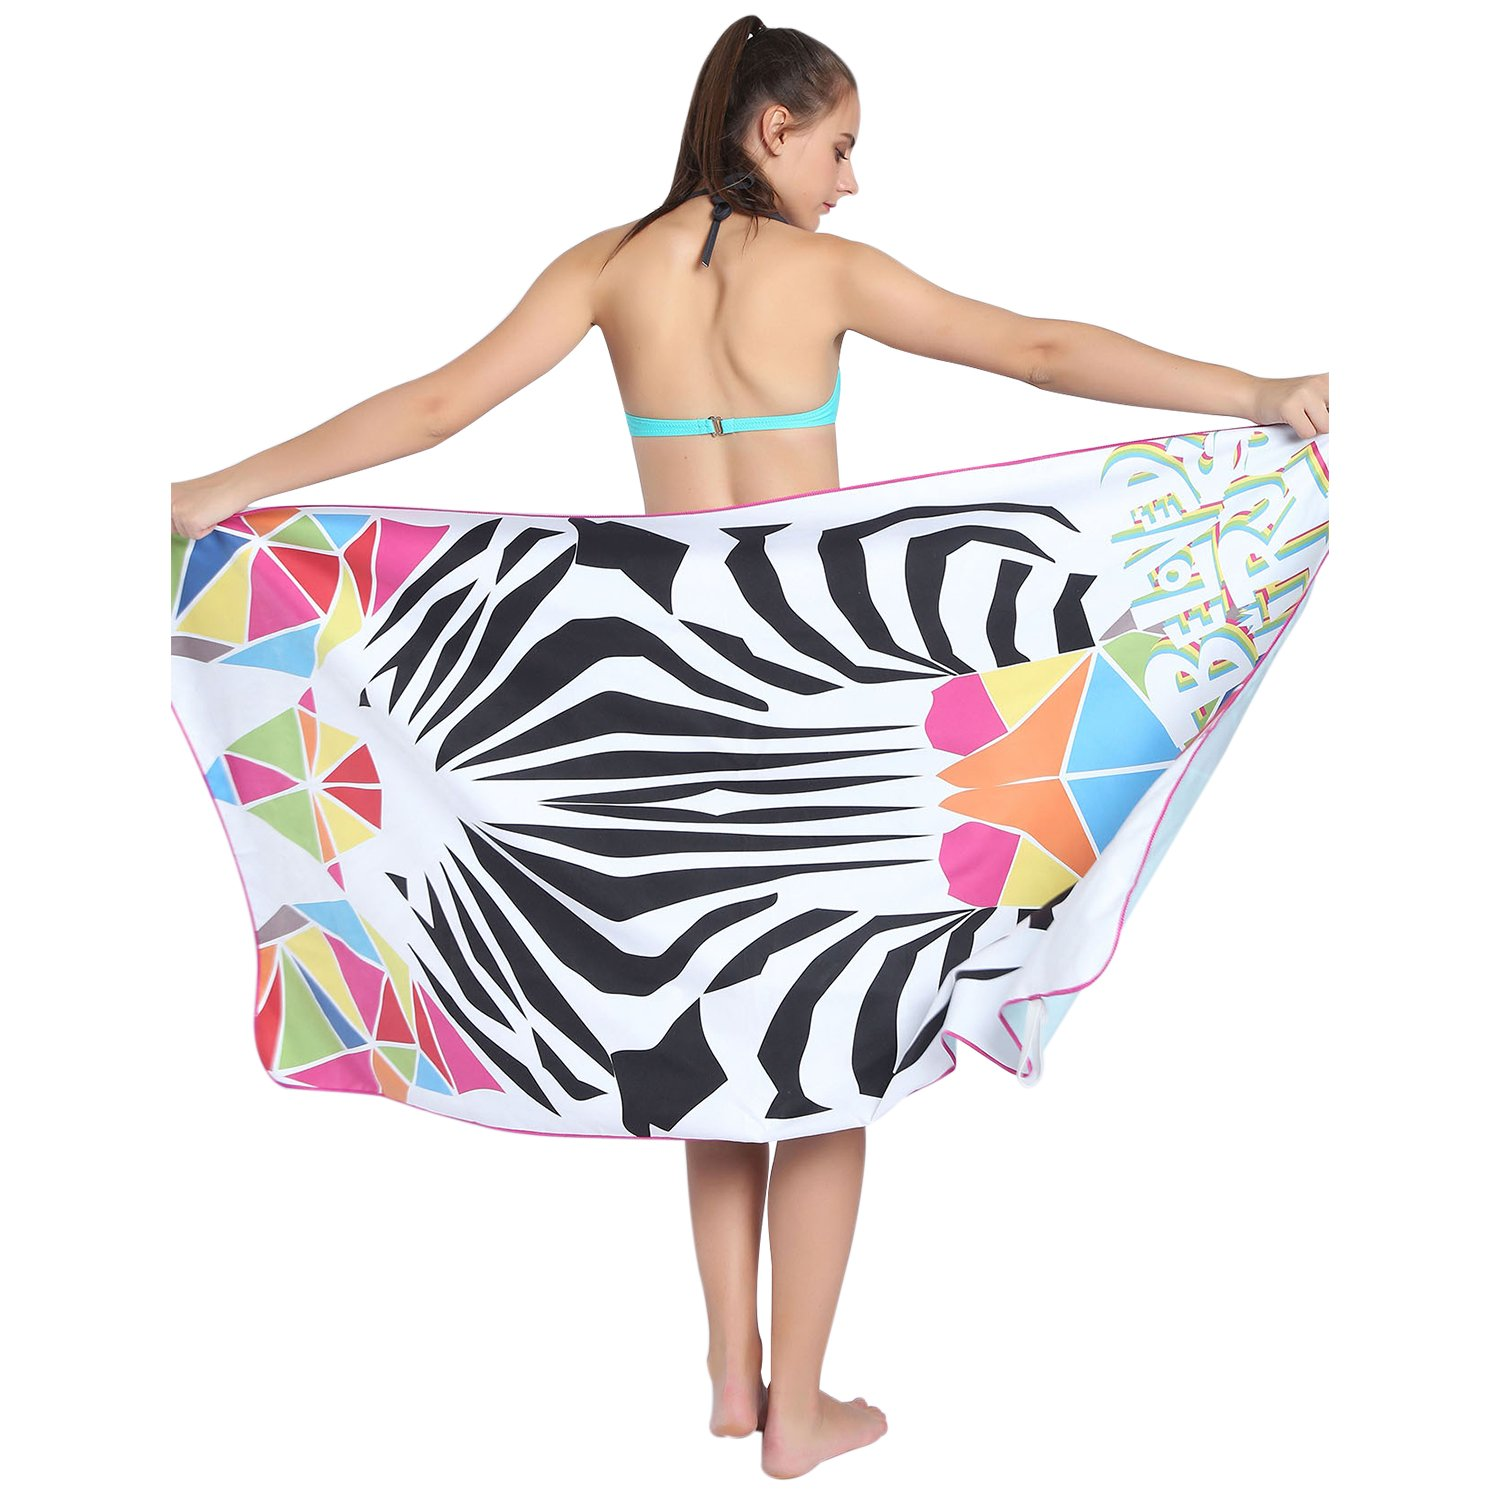 Towel Master Quick Dry Towel,Oversized Beach Towel- 63''x31'', Absorbent, Compact, Sand Proof. Best Lightweight Towel for the Swimming, Sports, Camping,Beach - Gift Pouch(Zebra)